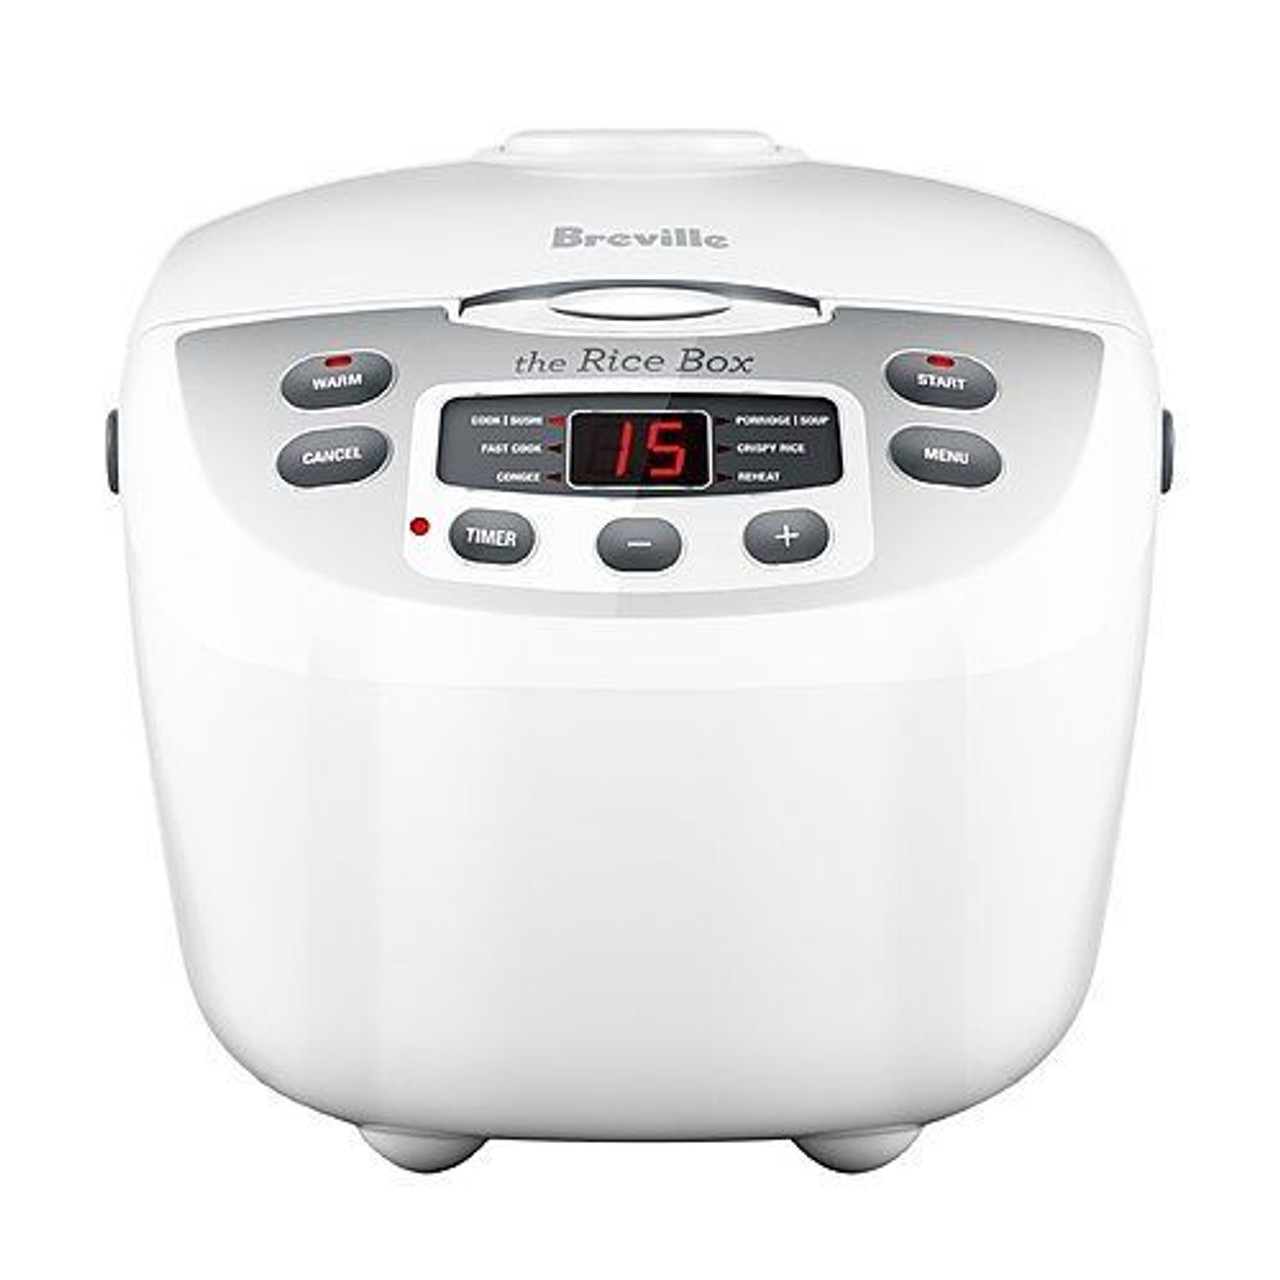 Breville BRC460WHT the Rice Box™ 10 Cup Programmable Rice Cooker